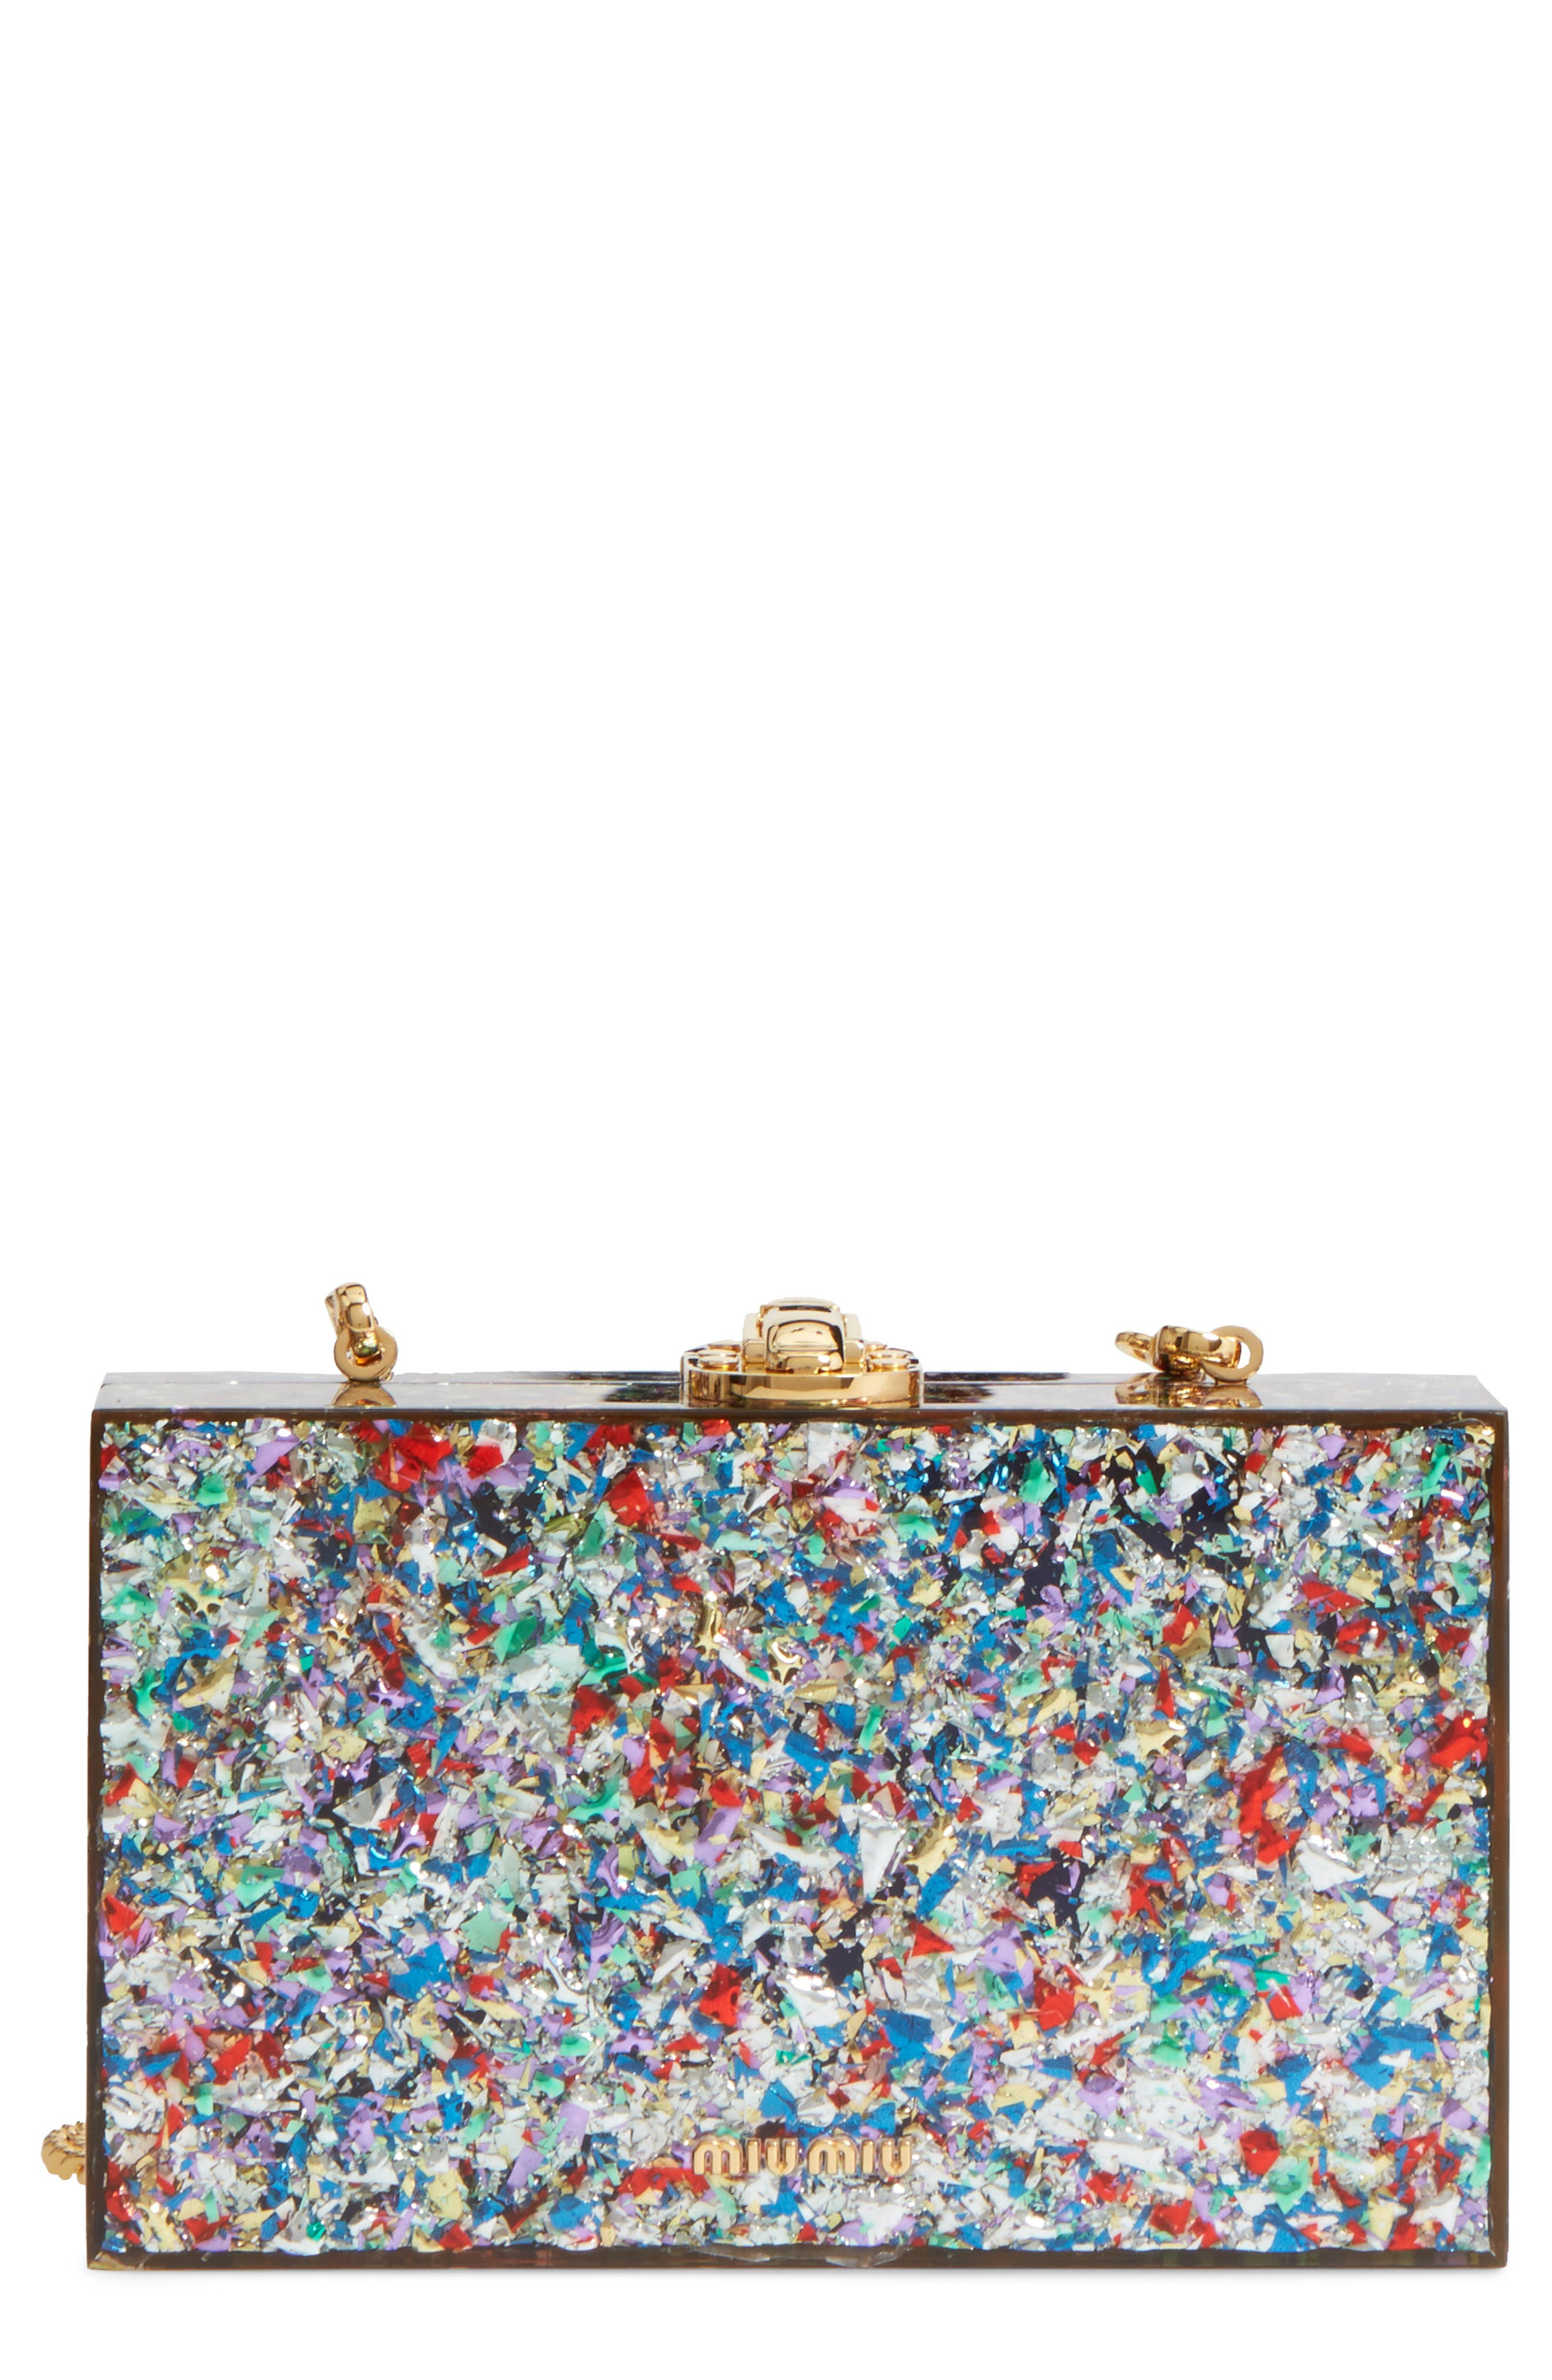 MIU MIU Confetti Box Clutch